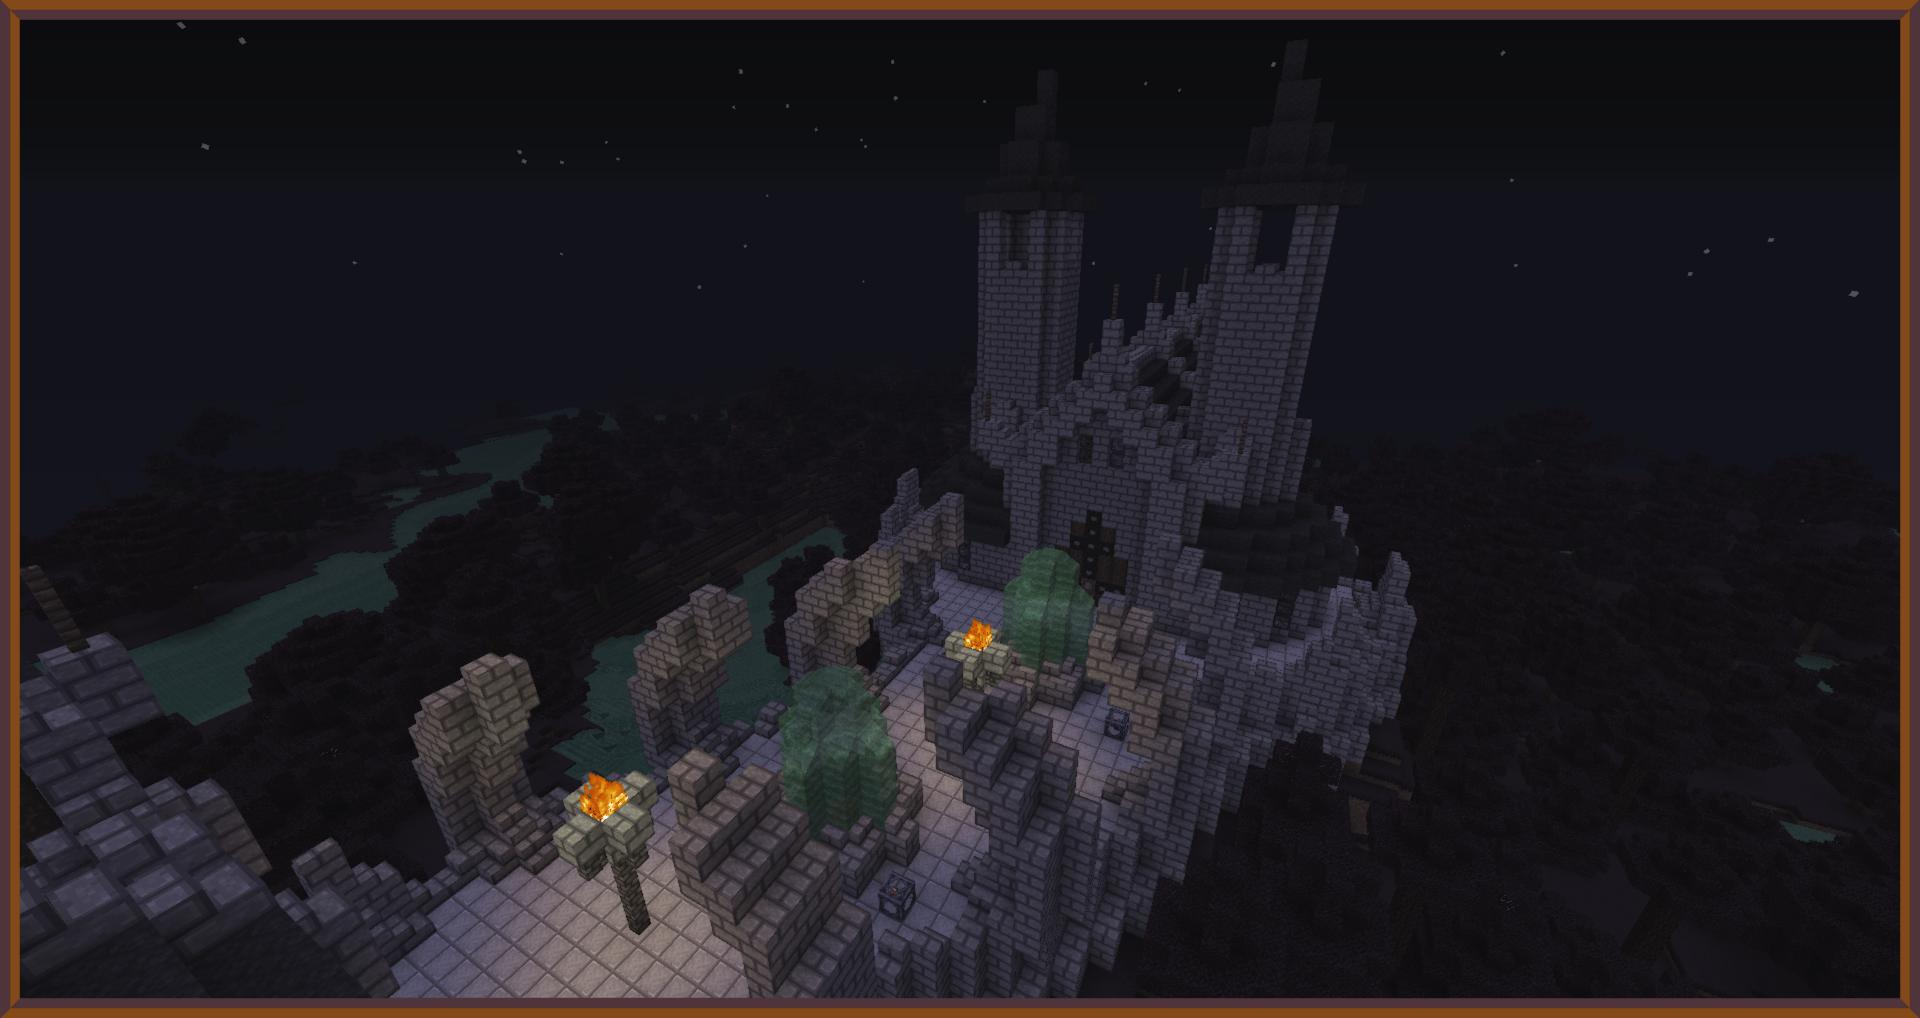 e0591  Mystery of the Pumpkin Castle Map 4 [1.6.2] Mystery of the Pumpkin Castle Map Download